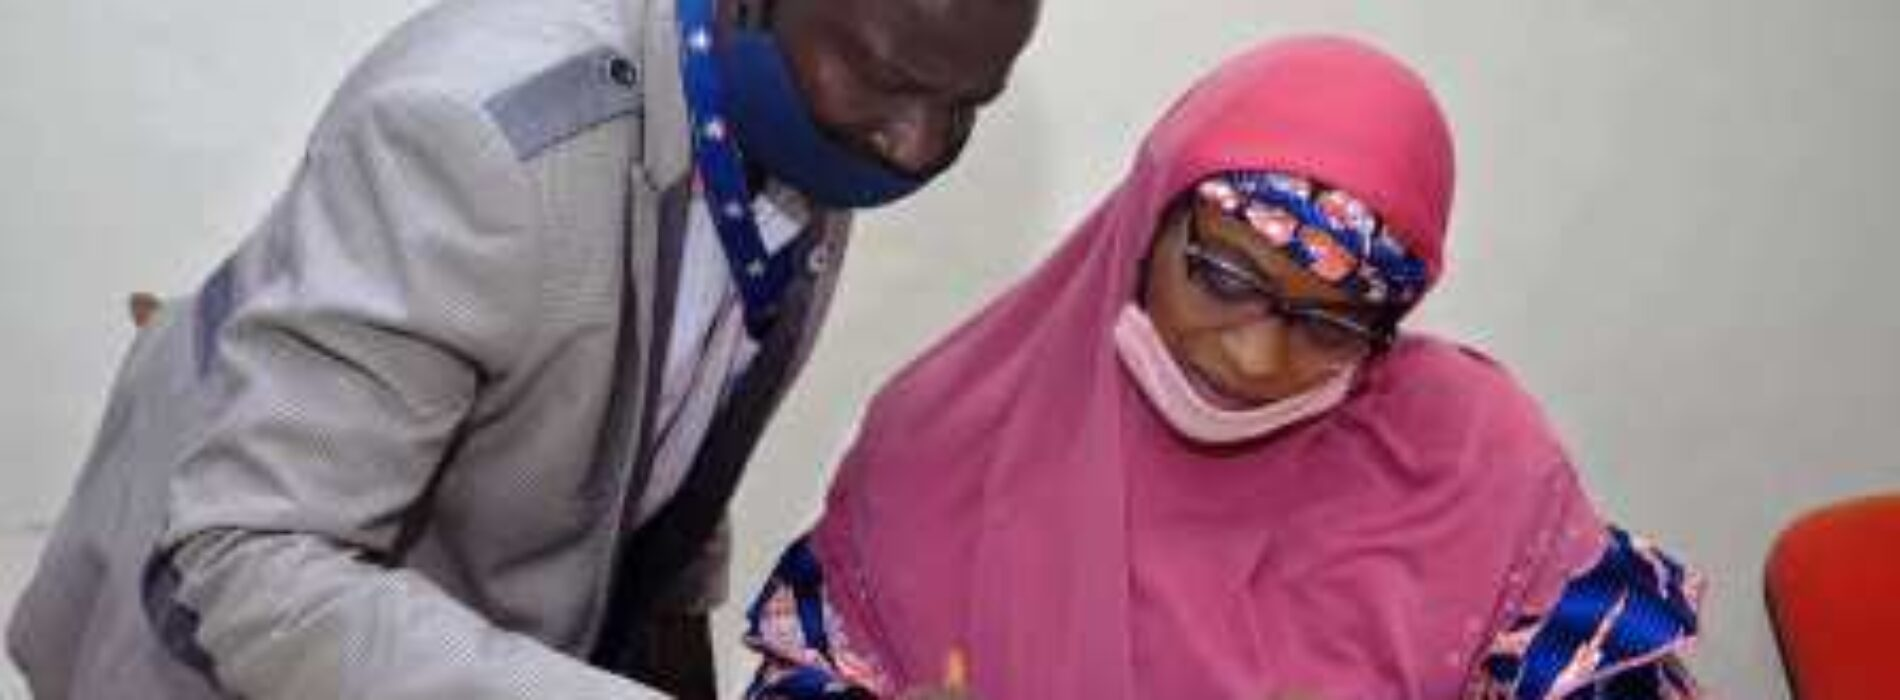 SFH, Oyo State partner to meet adolescents' reproductive health needs during COVID-19 pandemic